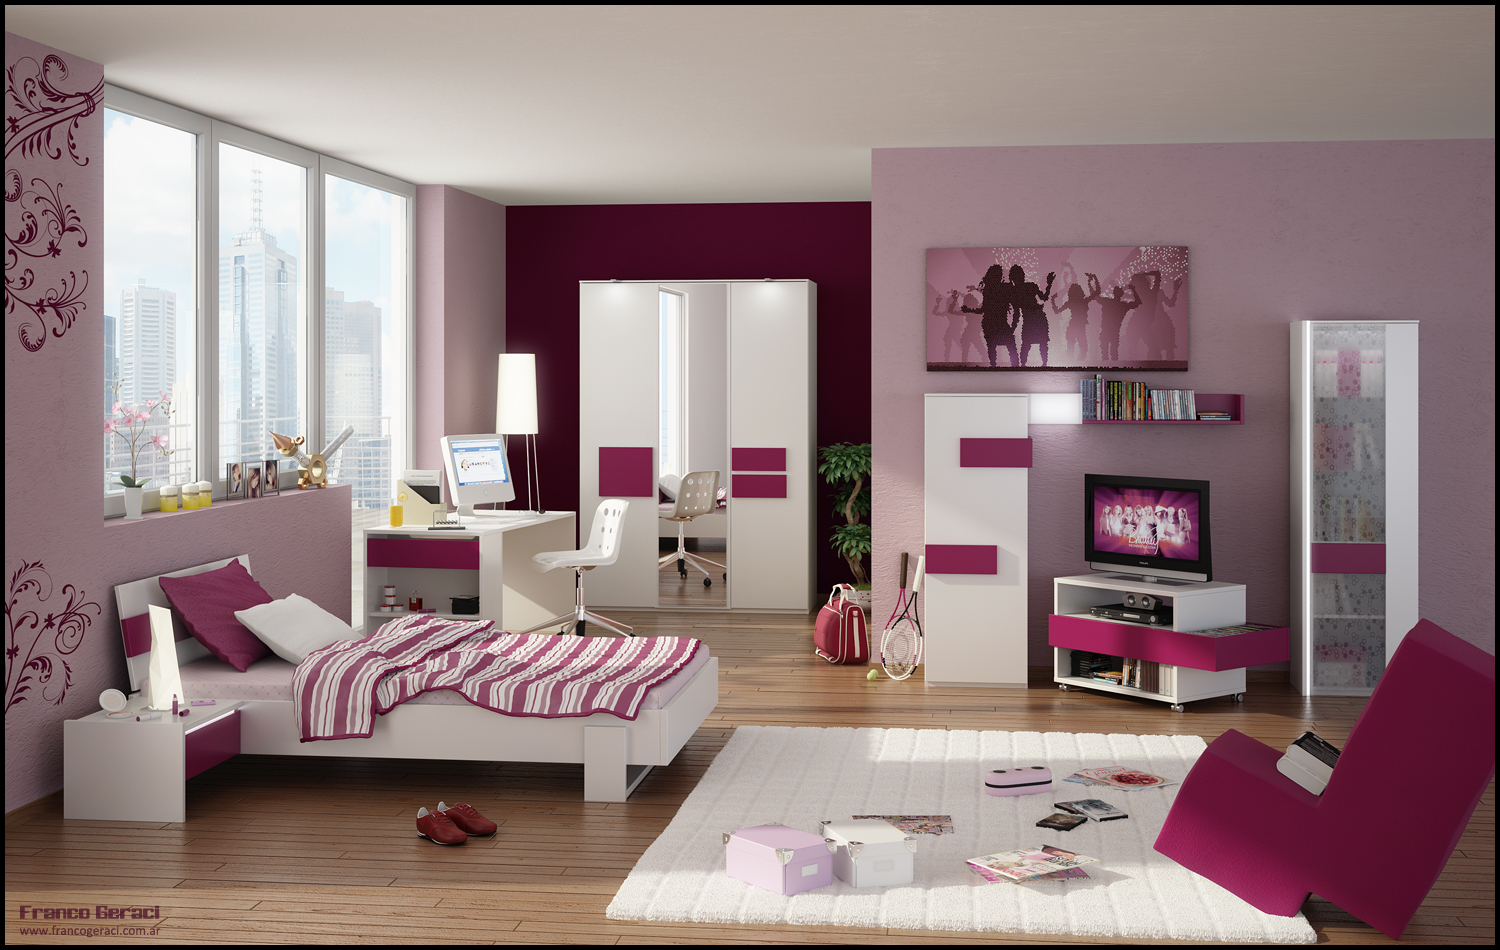 3dteen room byFEG & Teenage Room Designs